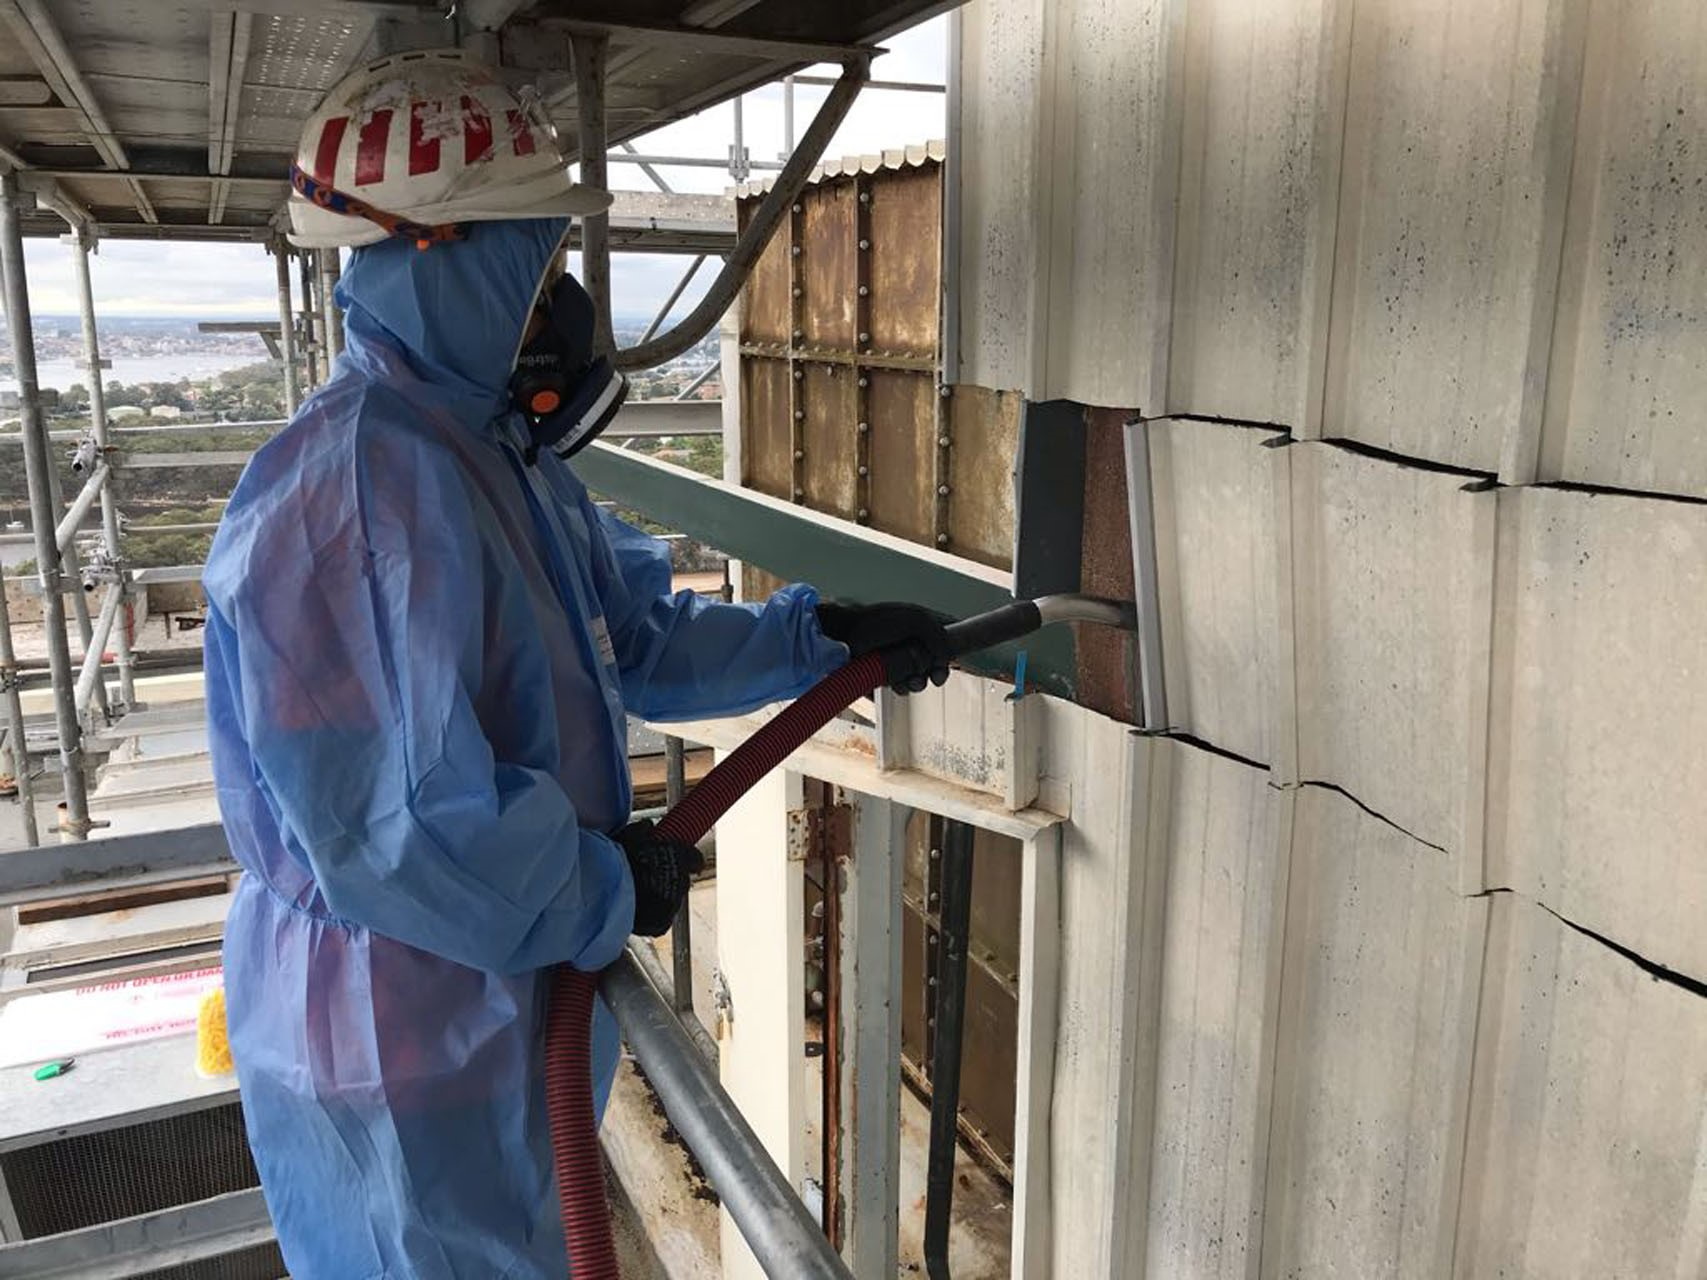 Ways To Find The Best Asbestos Removal In Maroubra Company